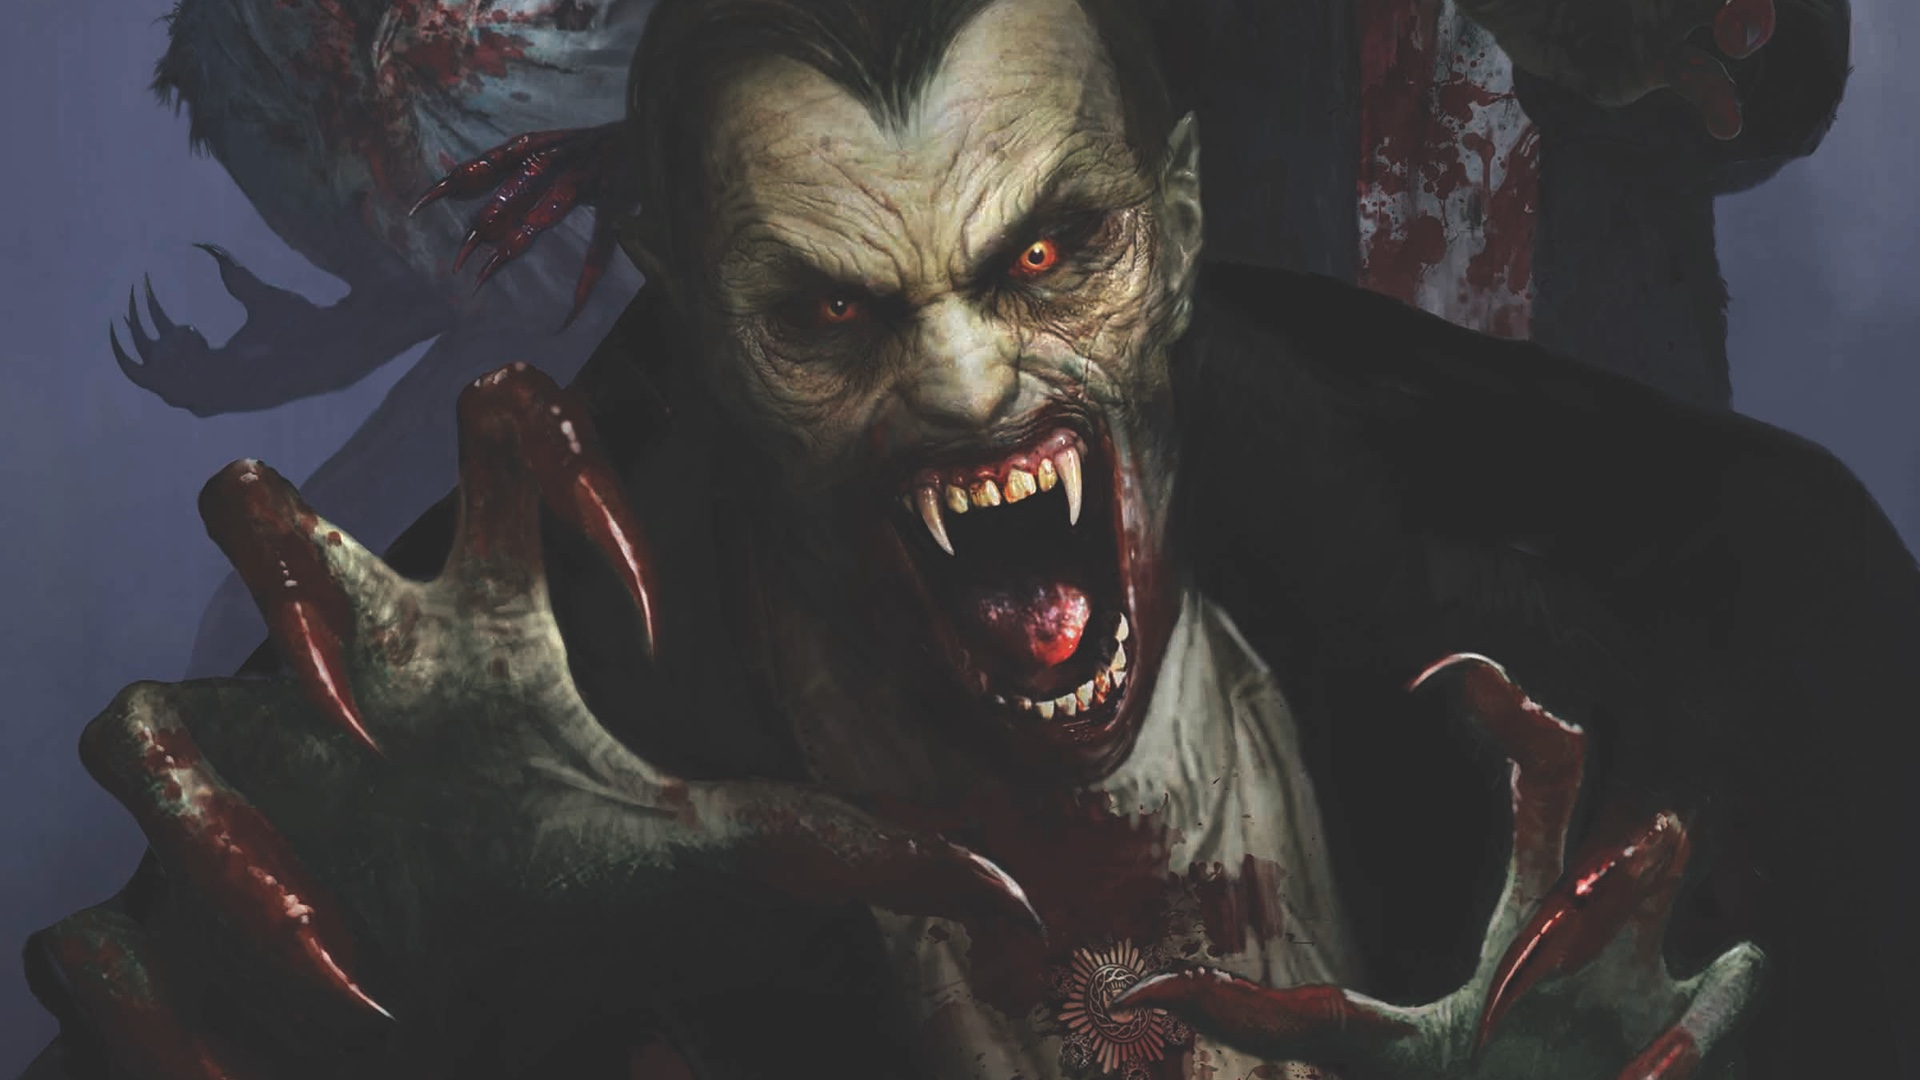 universal's classic monsters are coming to halloween horror nights